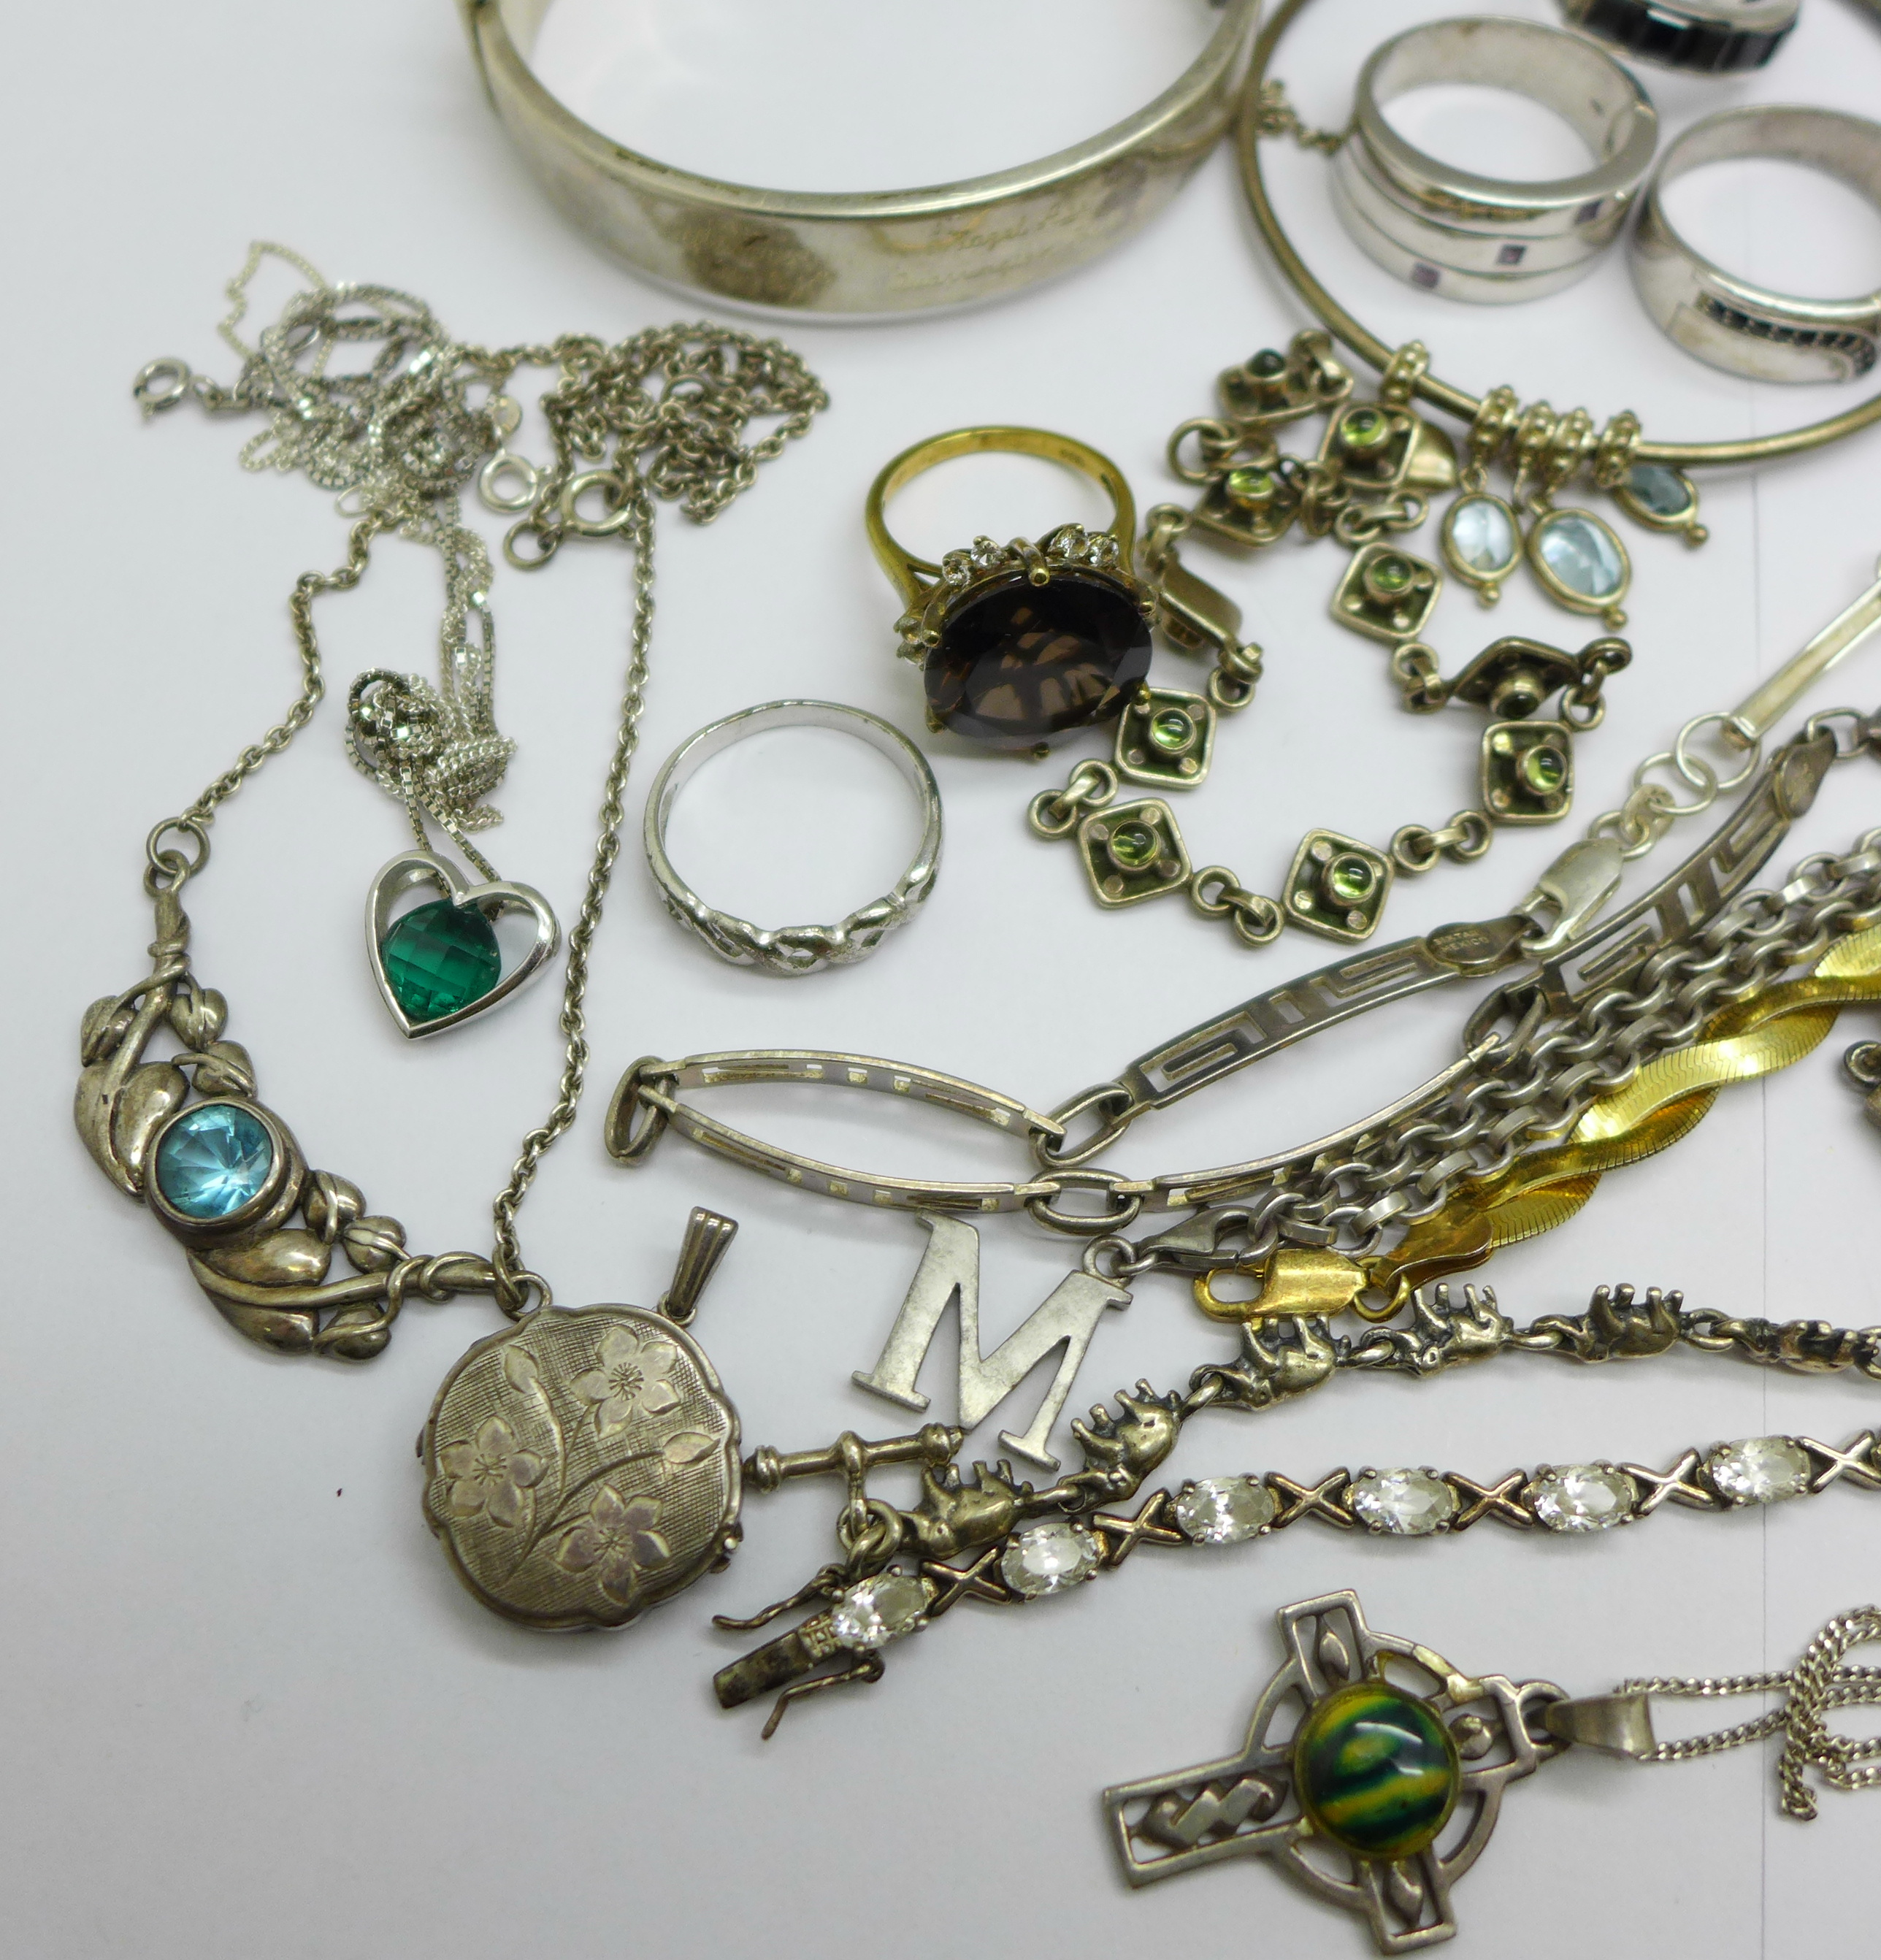 Silver jewellery including a hallmarked bangle, an elephant bracelet and a Thomas Sabo neck chain, - Image 2 of 5